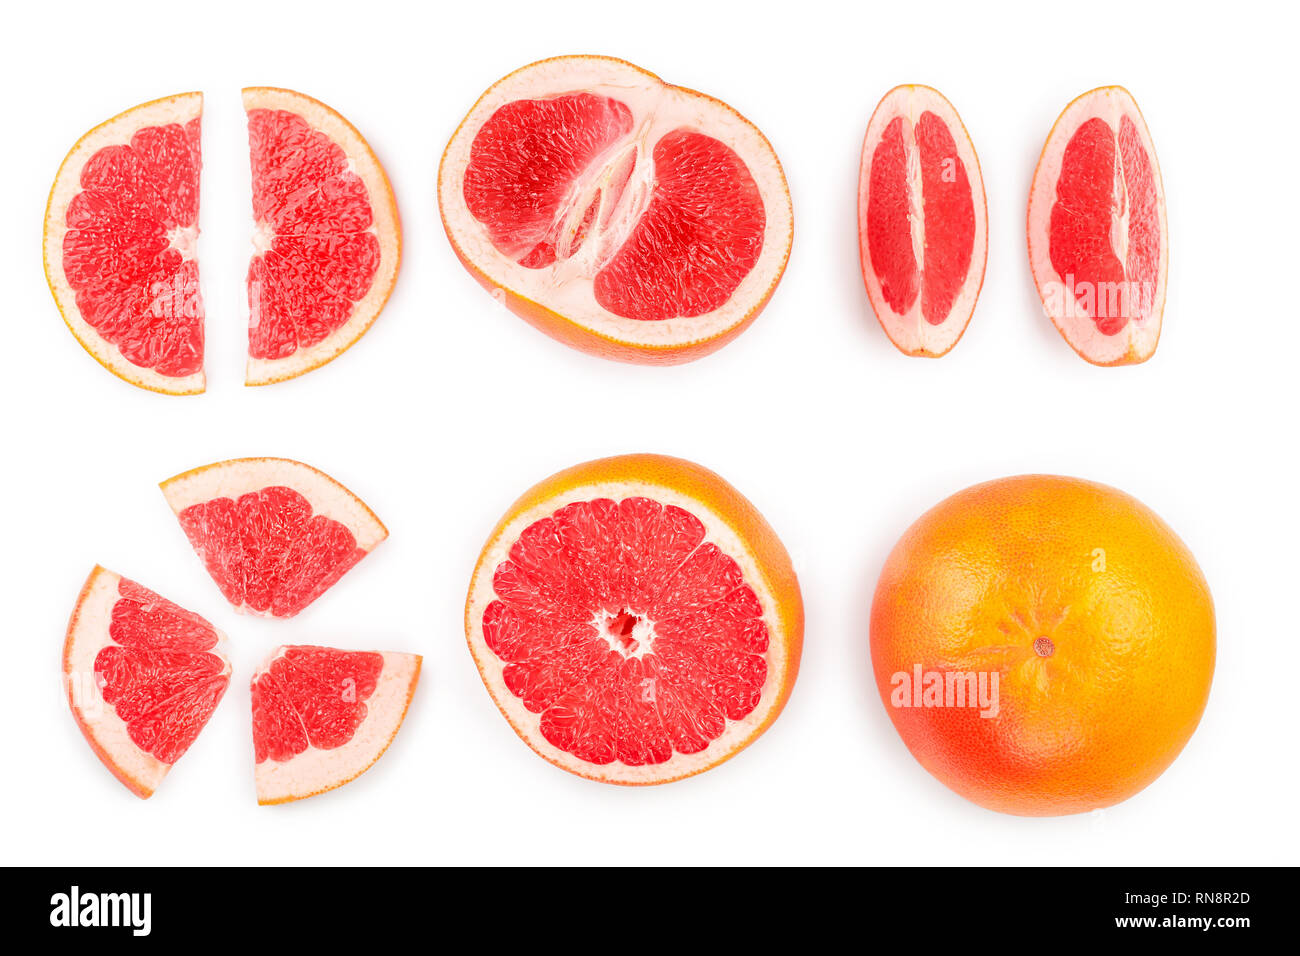 Grapefruit and slices isolated on white background. Top view. Flat lay pattern. Set or collection - Stock Image